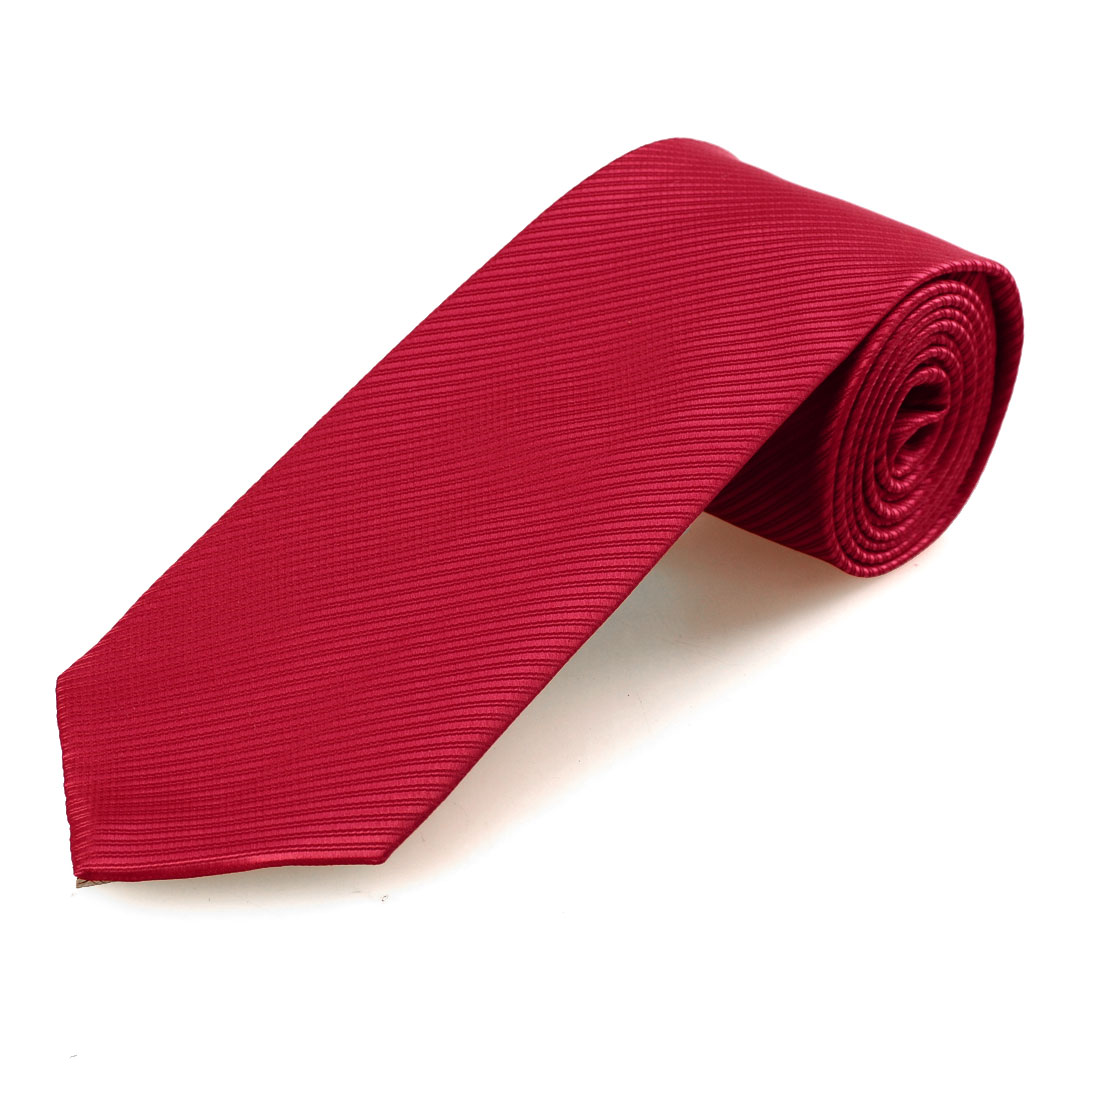 10.5cm Wide Stripe Print Polyester Self Tie Necktie Red for Men